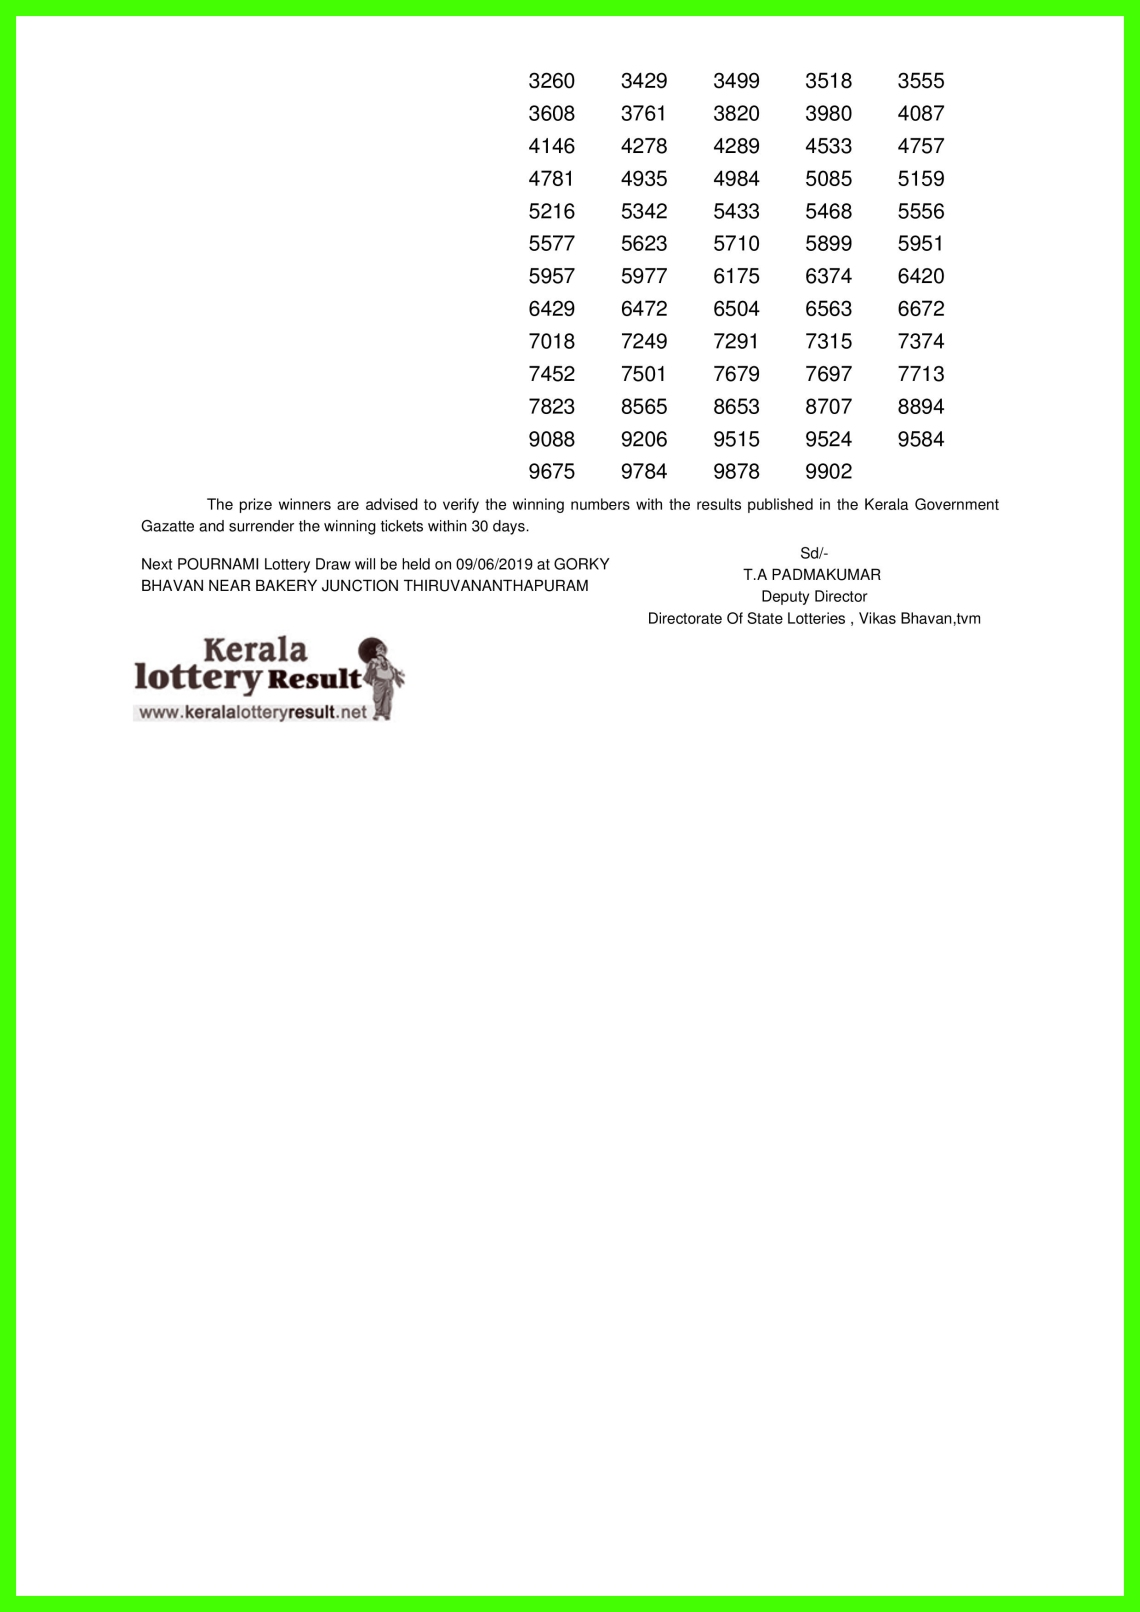 POURNAMI LOTTERY NO. RN-394th DRAW held on 02.06.2019-page-002